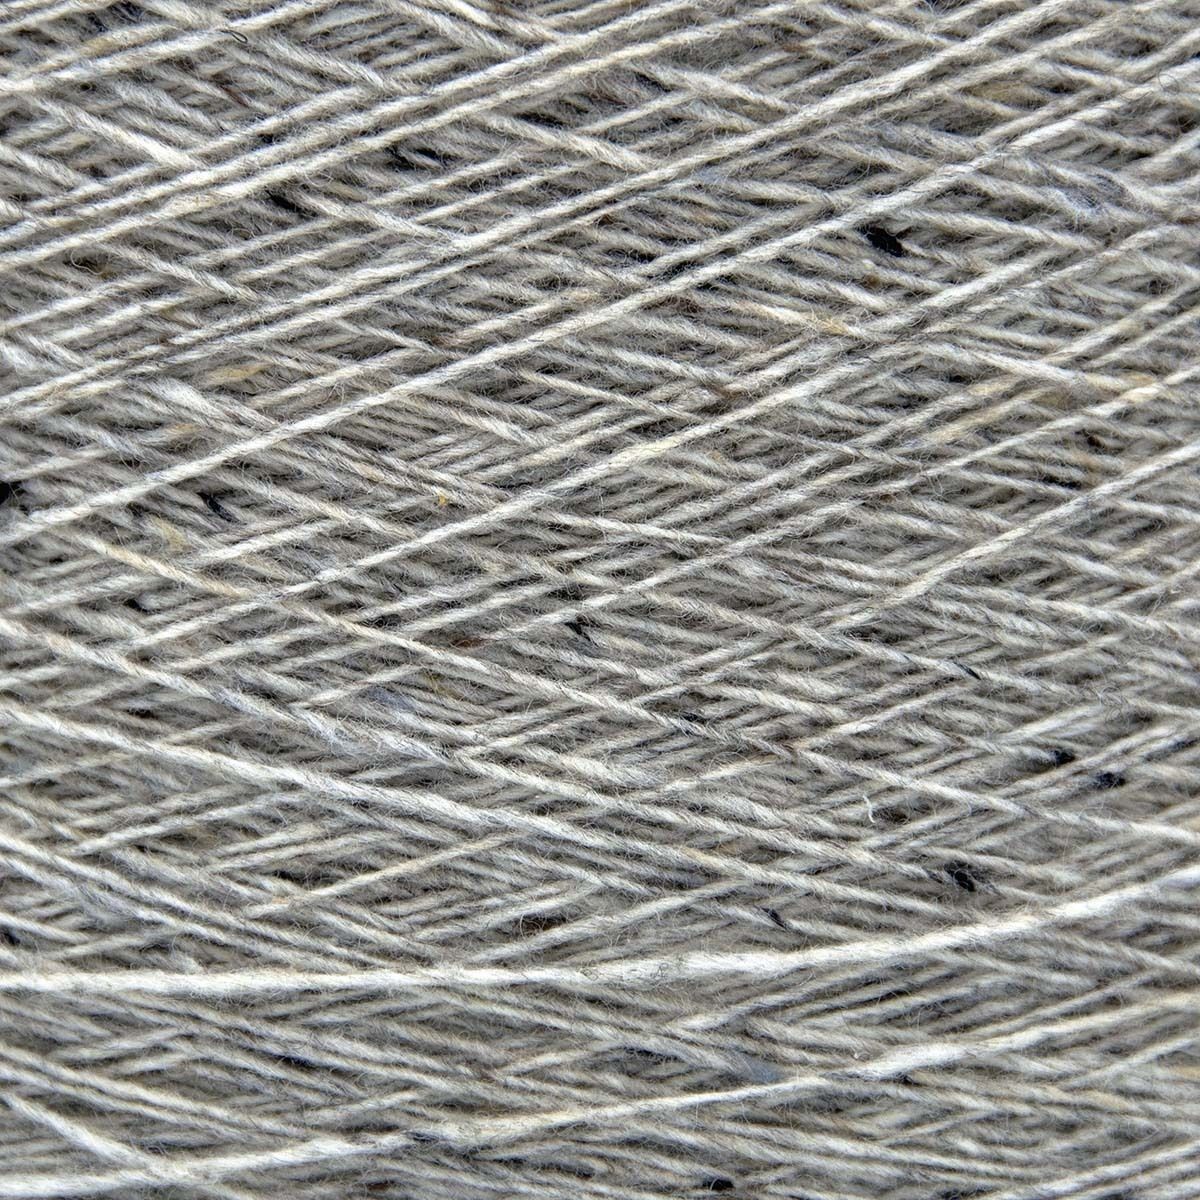 Knoll Yarns Soft Donegal (одинарный твид) - 5529